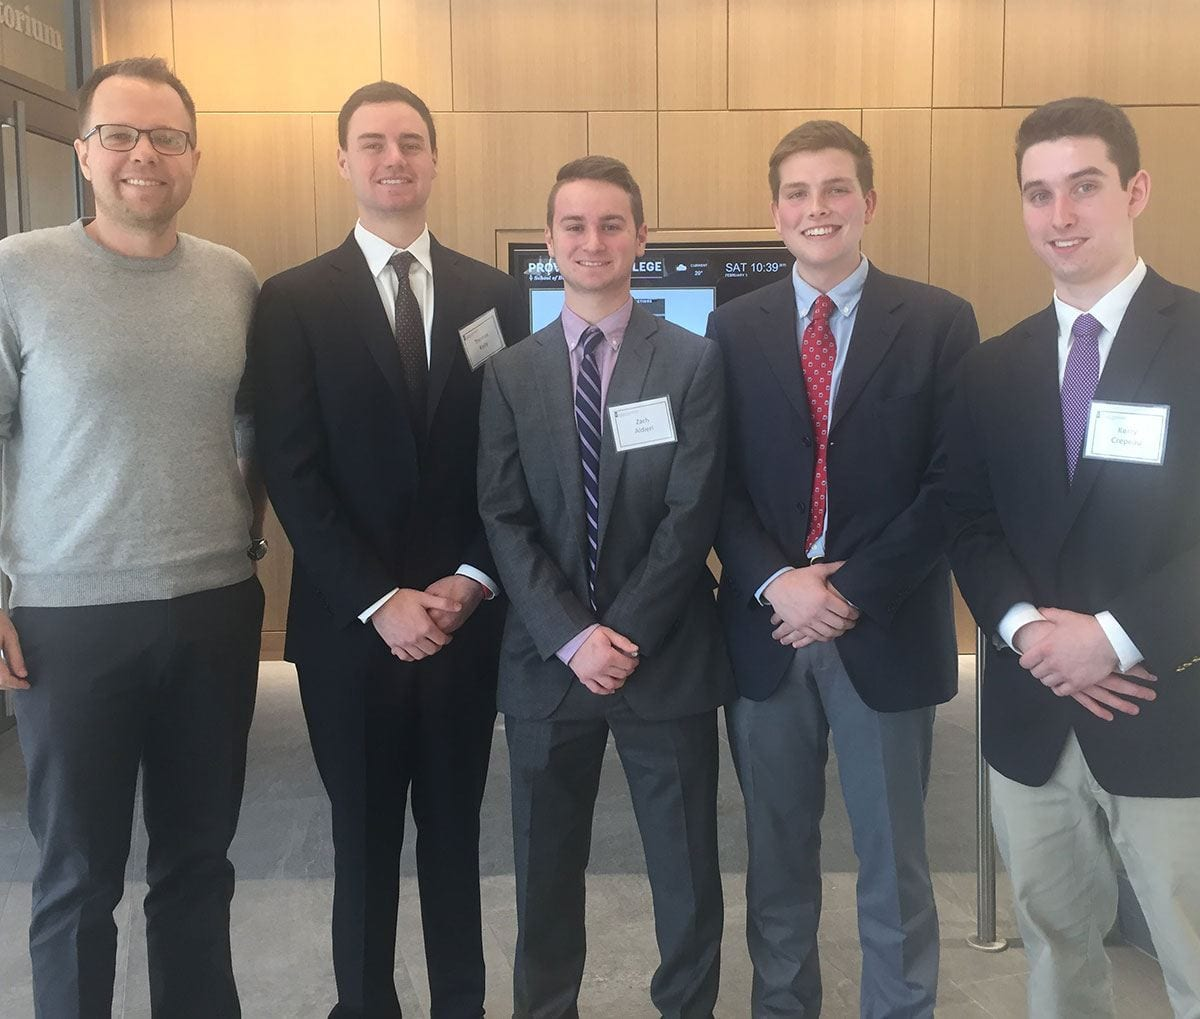 Adviser Dr. Marcin Krolikowski, assistant professor of finance, left, stands with the winning team he mentored in this year's Michael Smith Ethics Case Competition. Students are, from left, Thomas Kelly '20, Zach Aldieri '20, Jack Cassidy '20, and Kerry Crepeau '20.